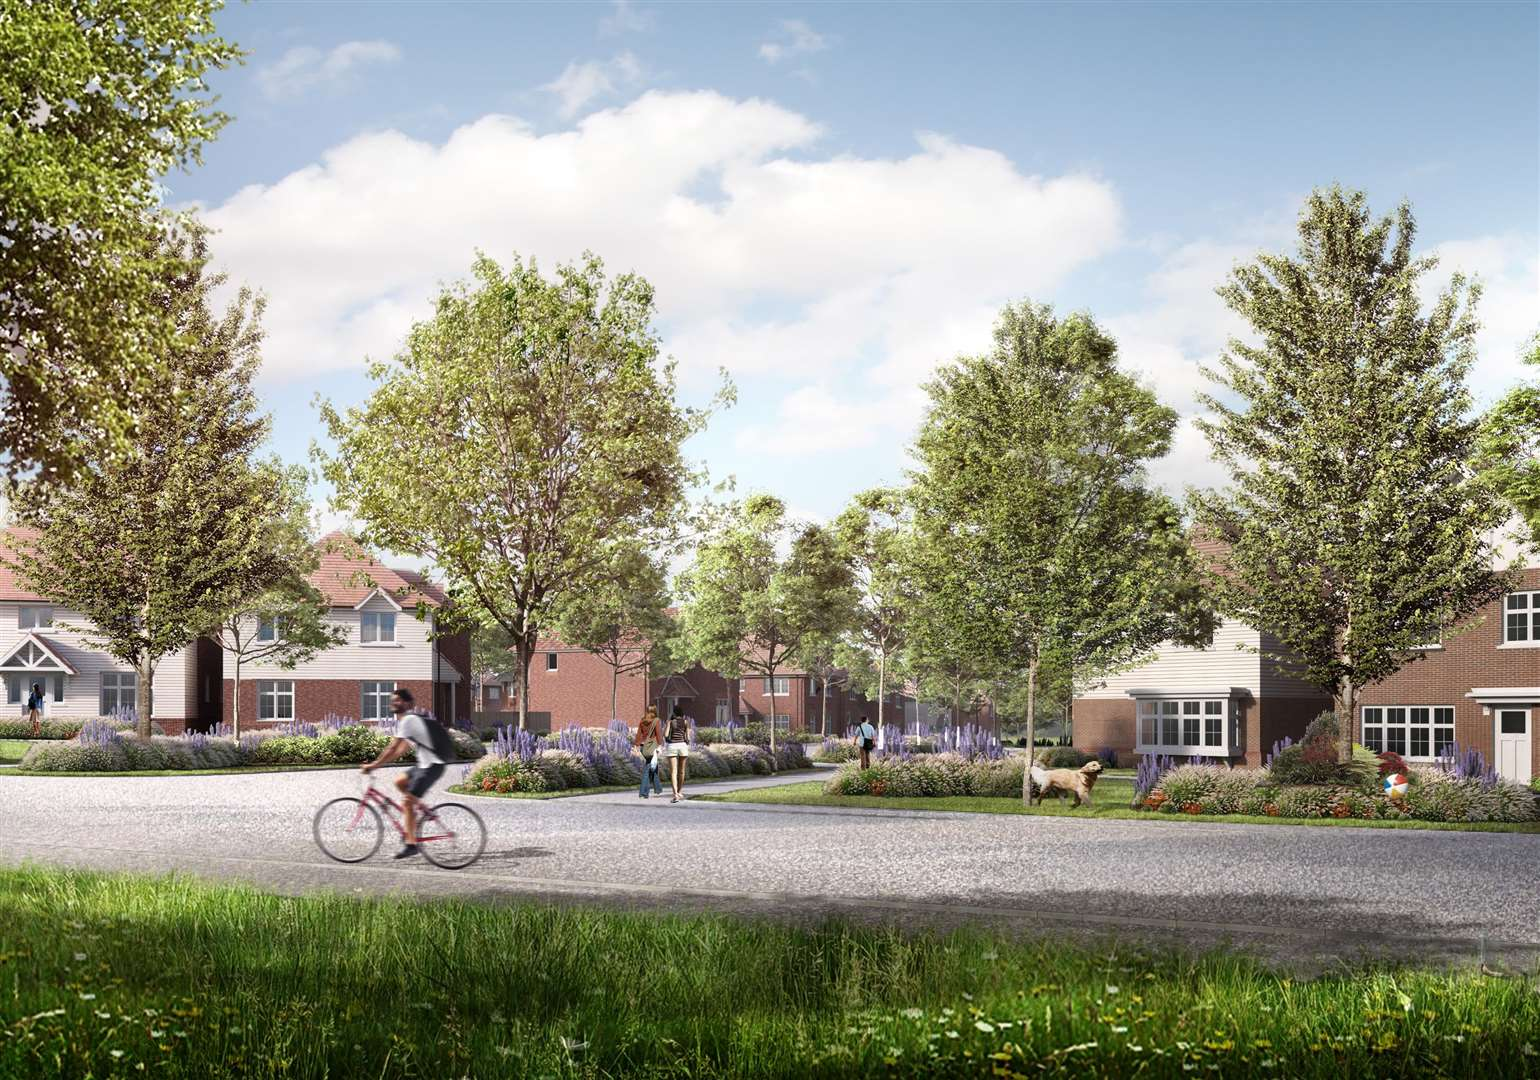 Green corridors and landscaping play a key role in the planning application according to the developers